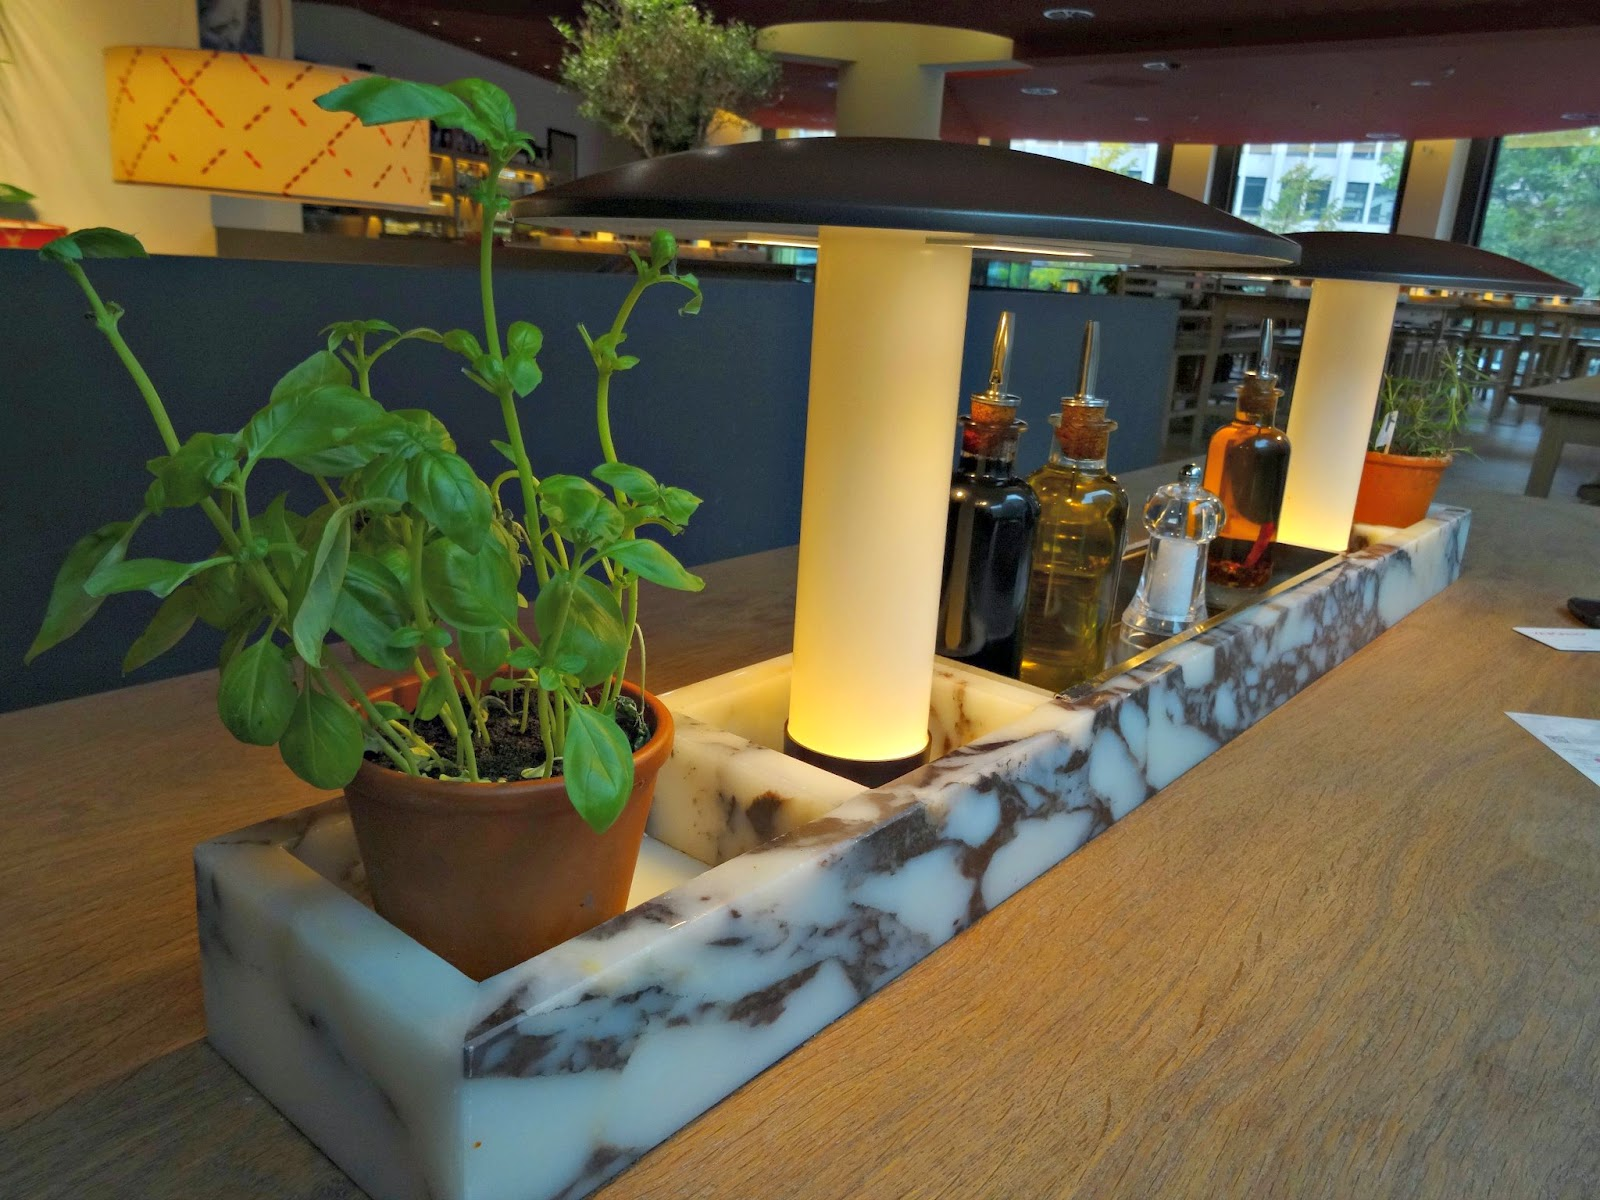 Vapiano Table and herbs